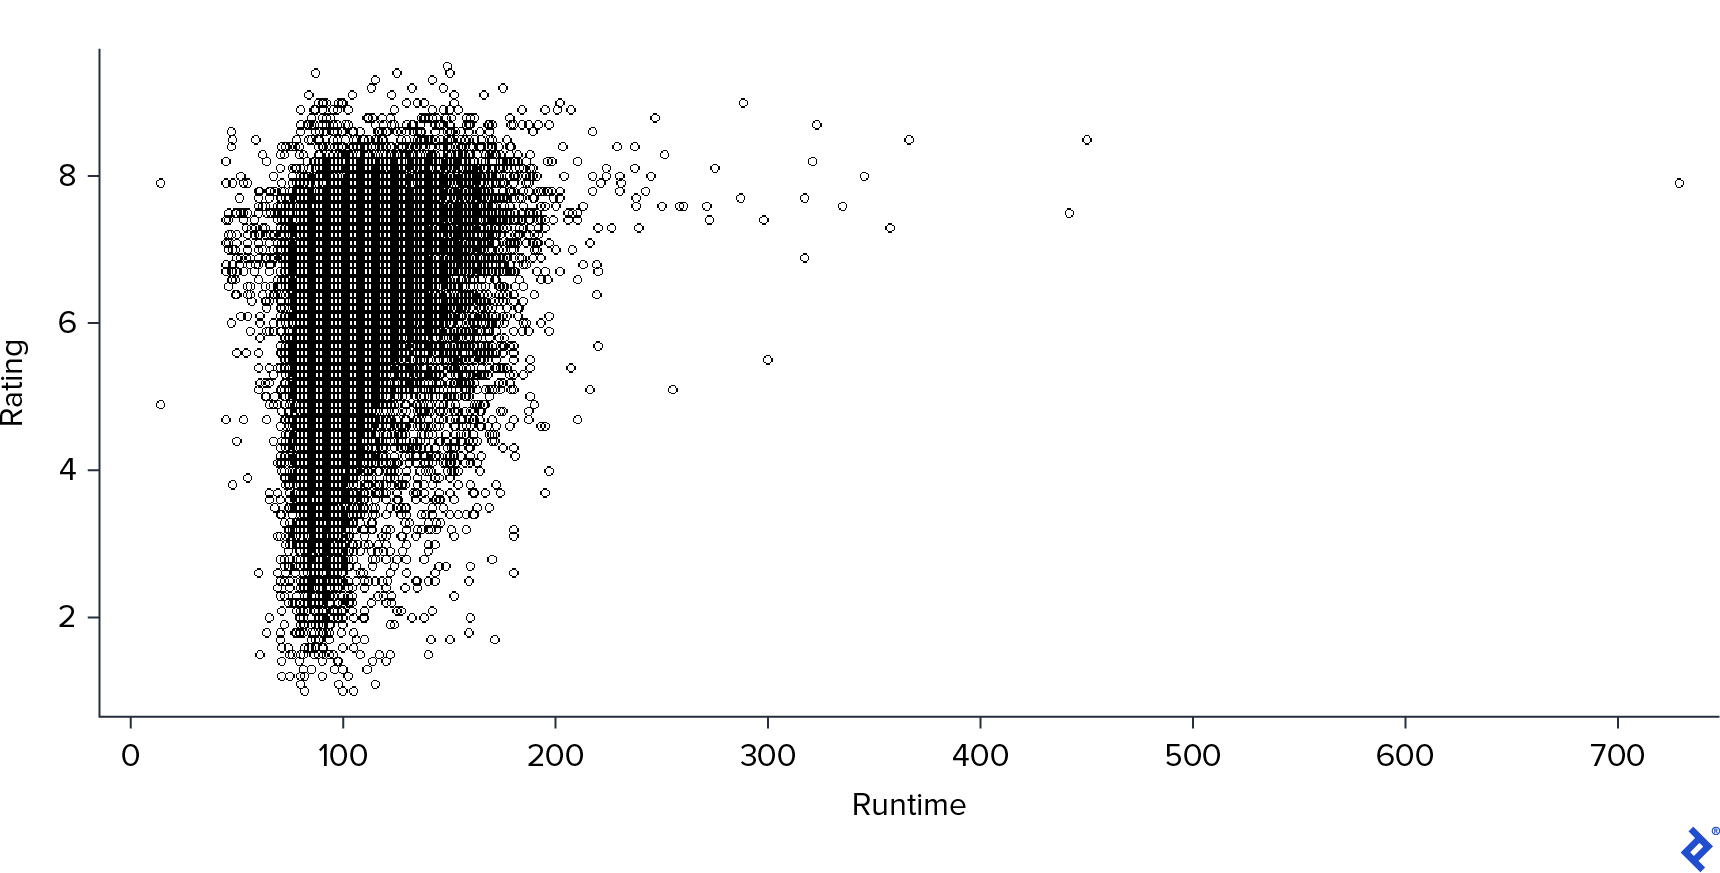 A scatter plot between rating and runtime.